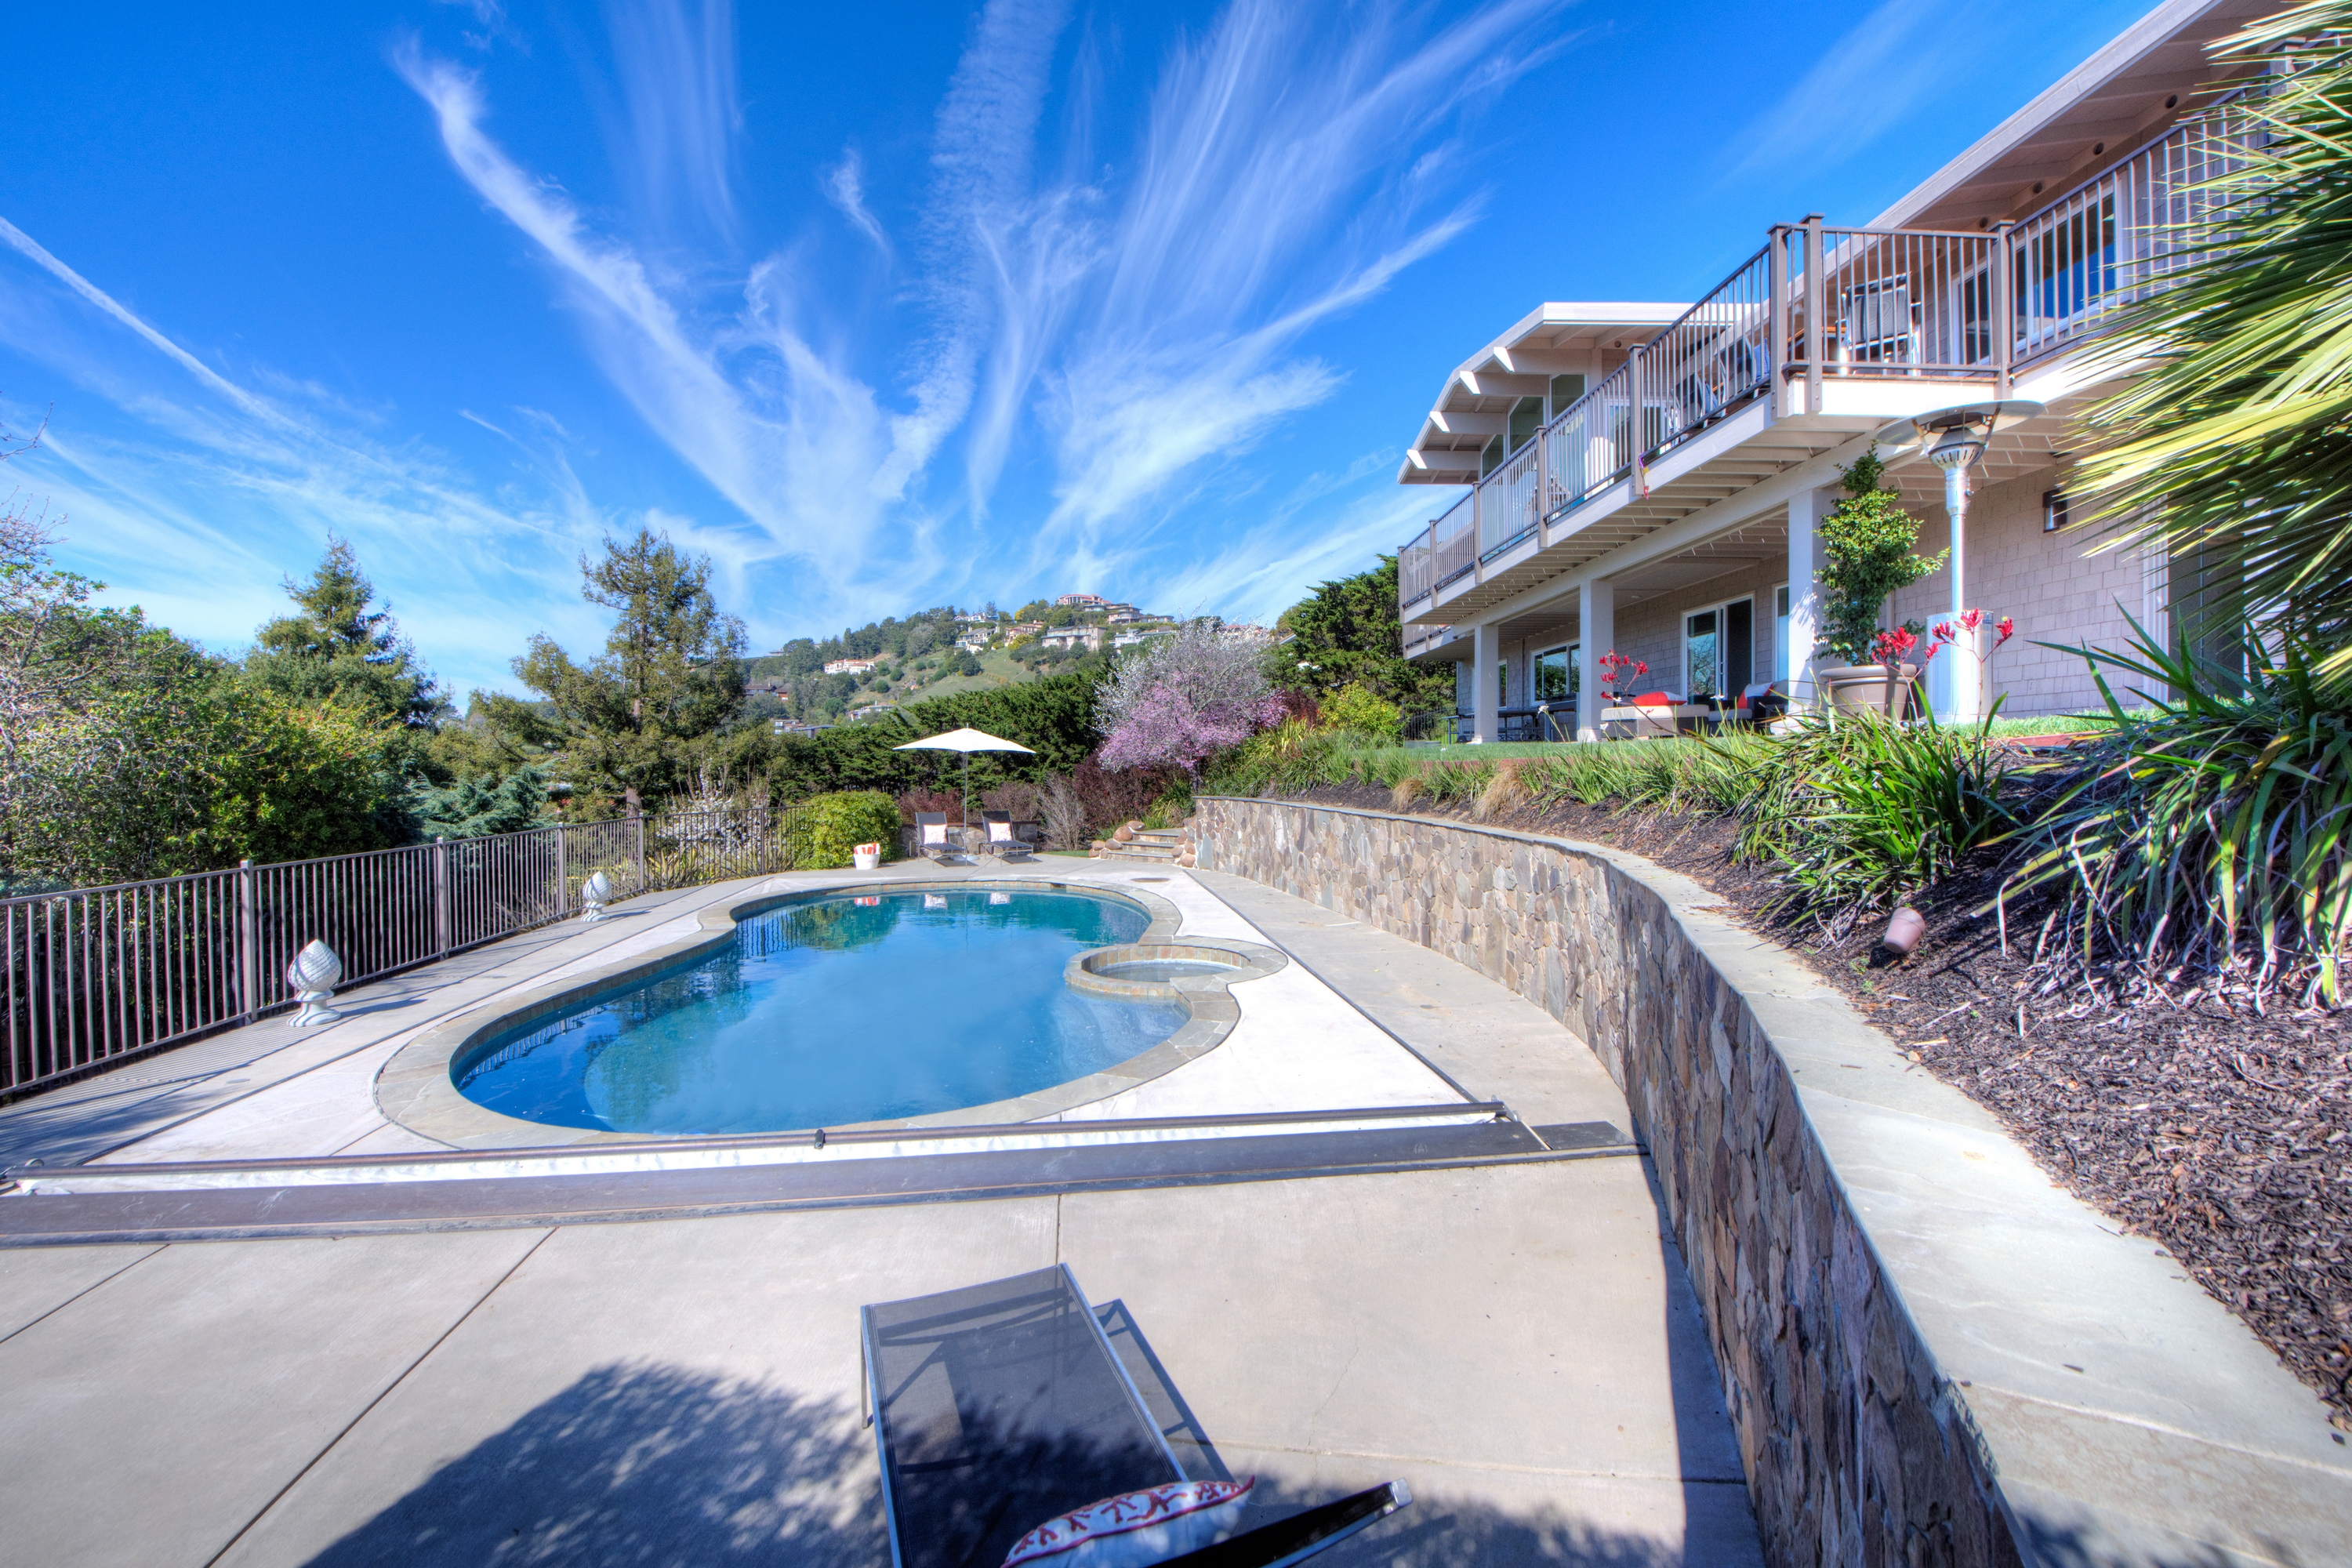 Casa Unifamiliar por un Venta en Height of Style on Mount Tiburon 10 Audrey Ct Tiburon, California, 94920 Estados Unidos